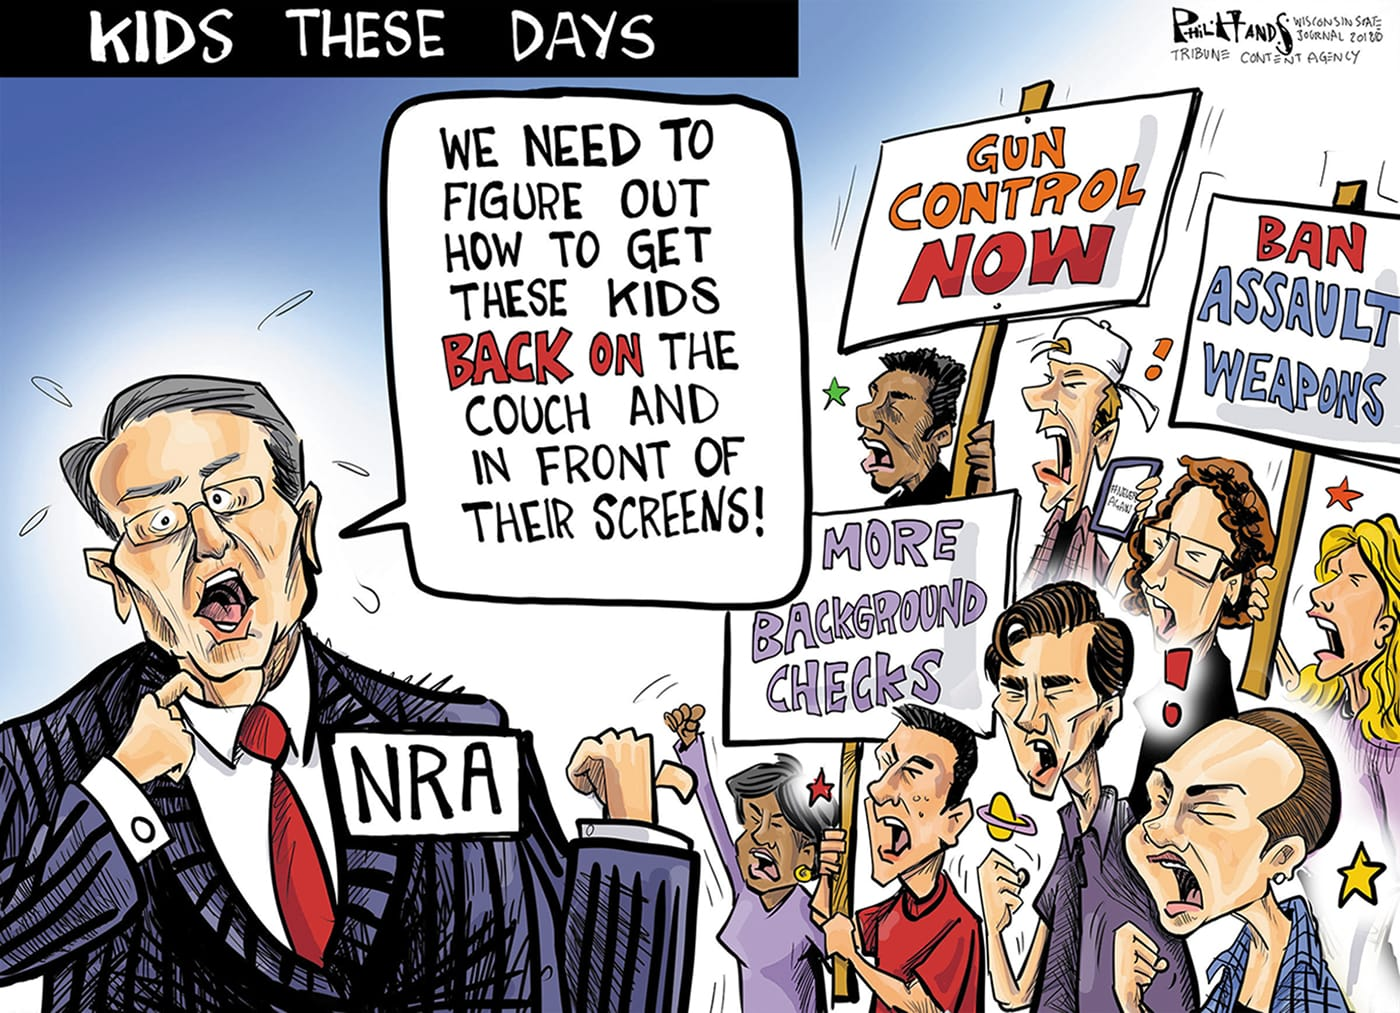 Feb. 24: NRA and Teens